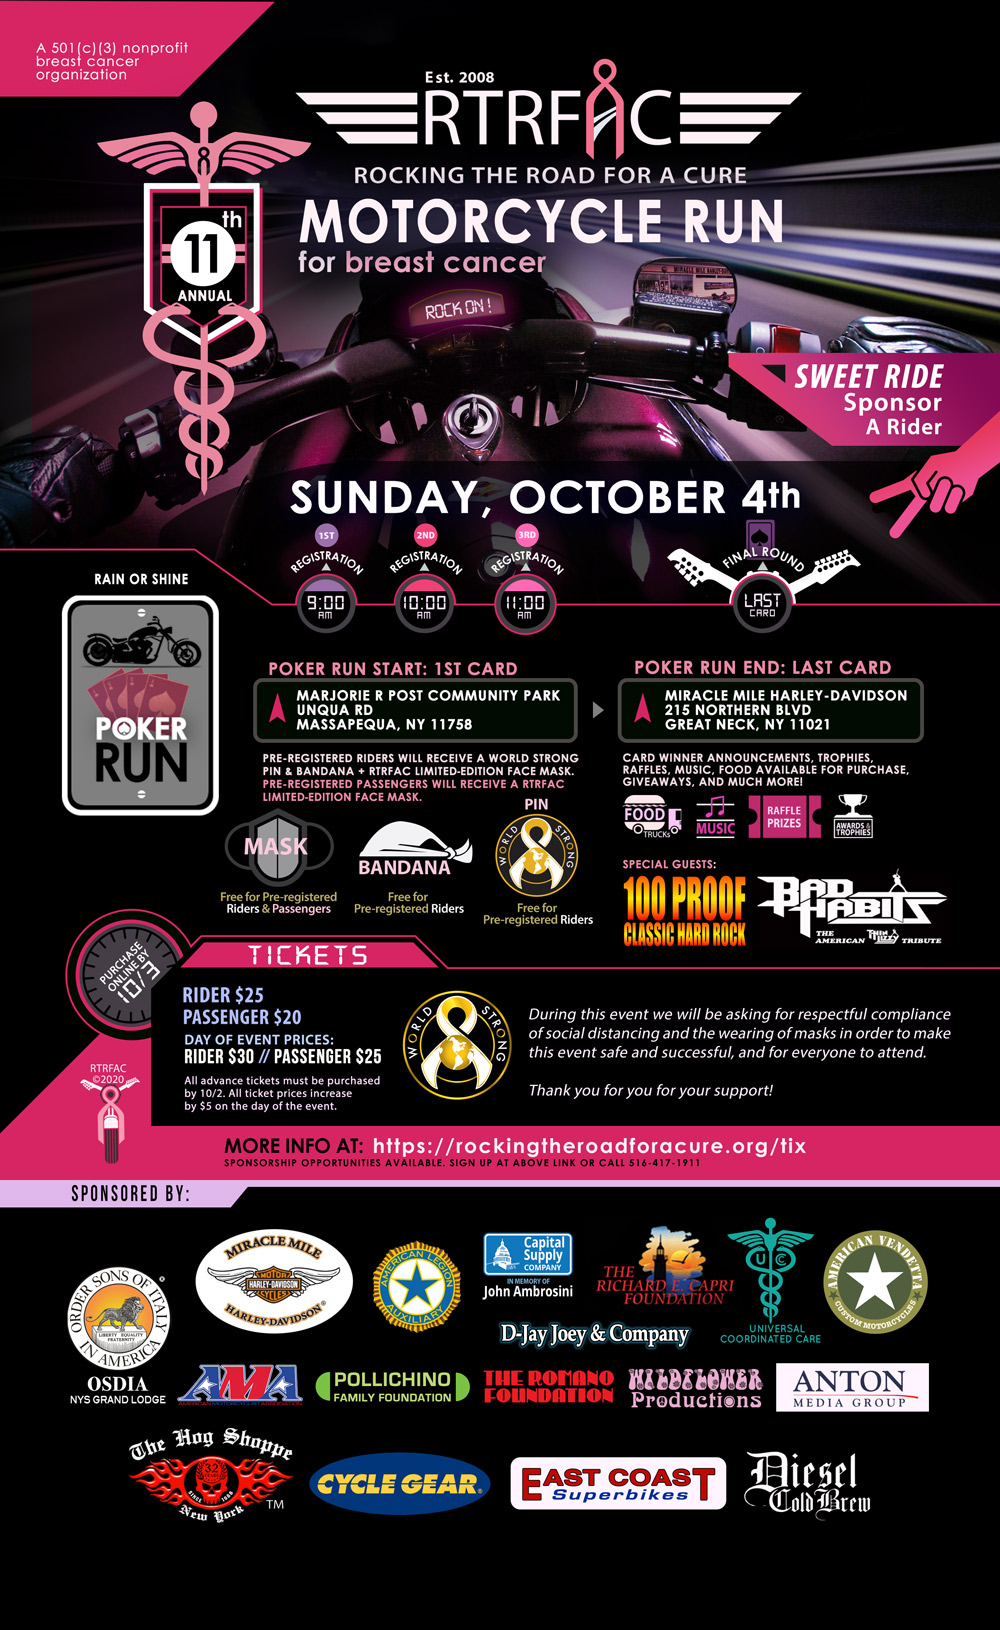 11th Annual Motorcycle Run for breast cancer - Long Island - Great Neck - Poker Run - Miracle Mile Harley-Davidson